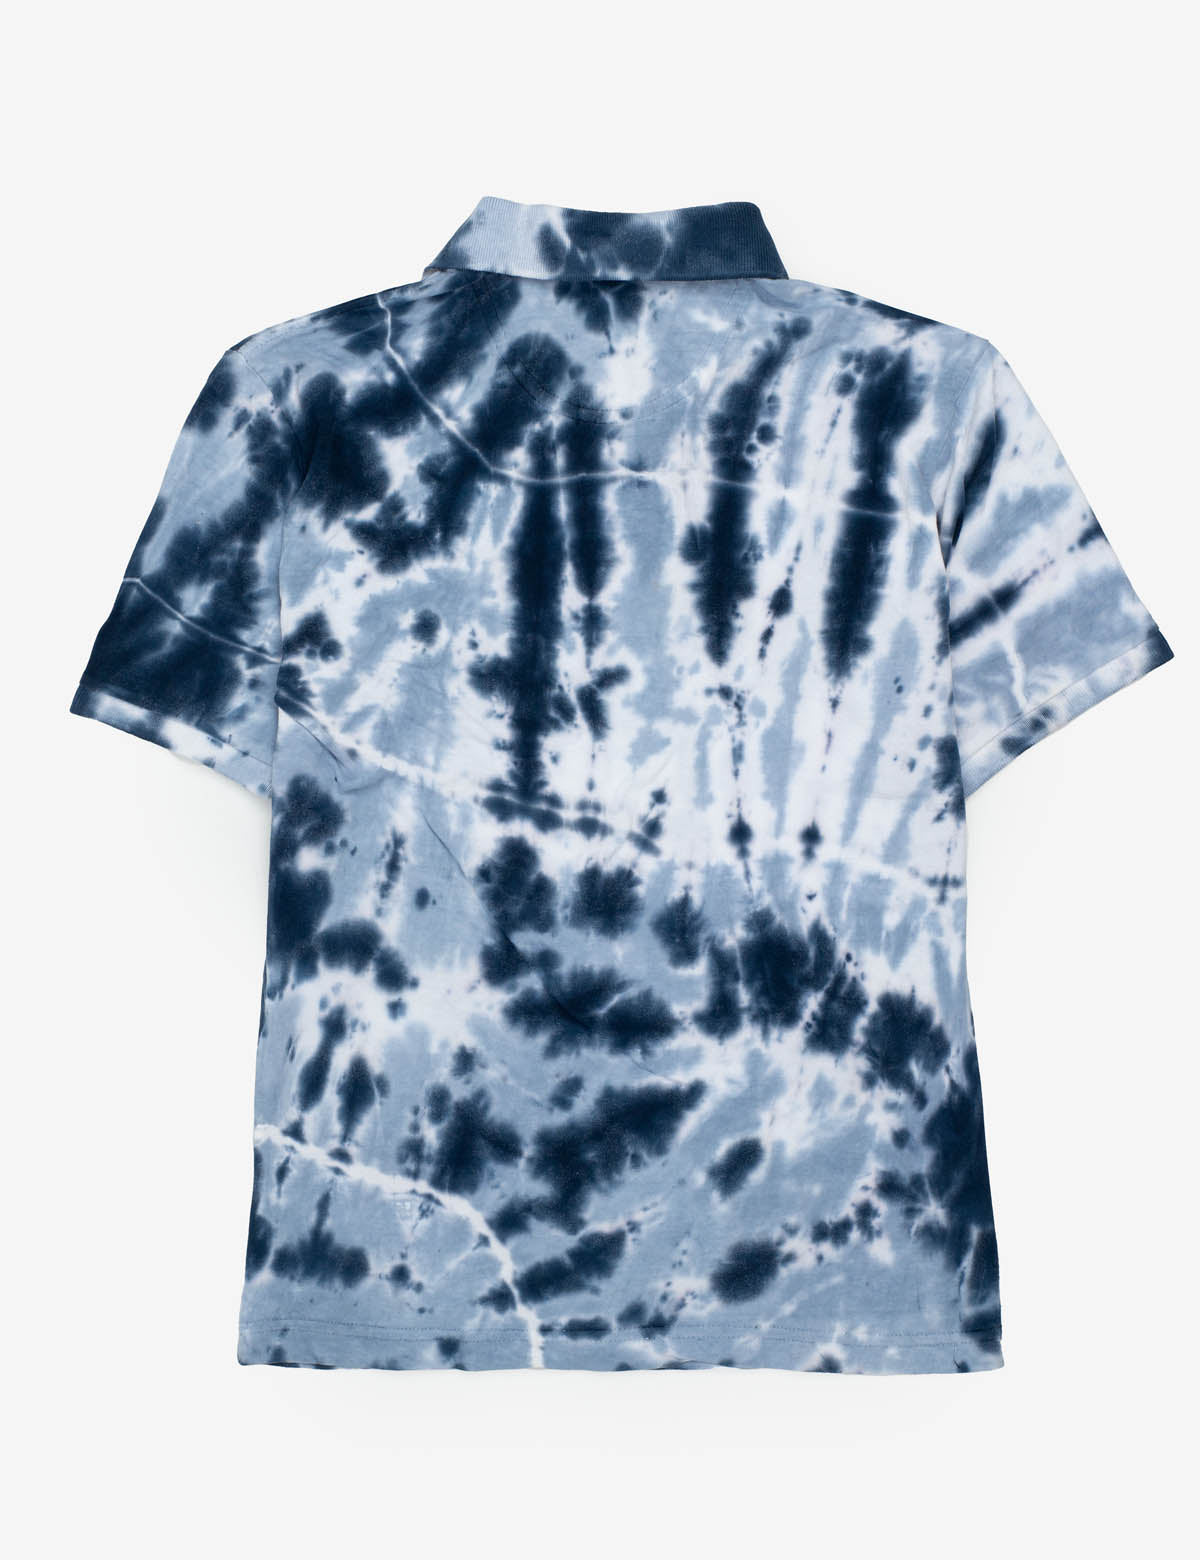 BOYS TIE DYE POLO SHIRT - U.S. Polo Assn.